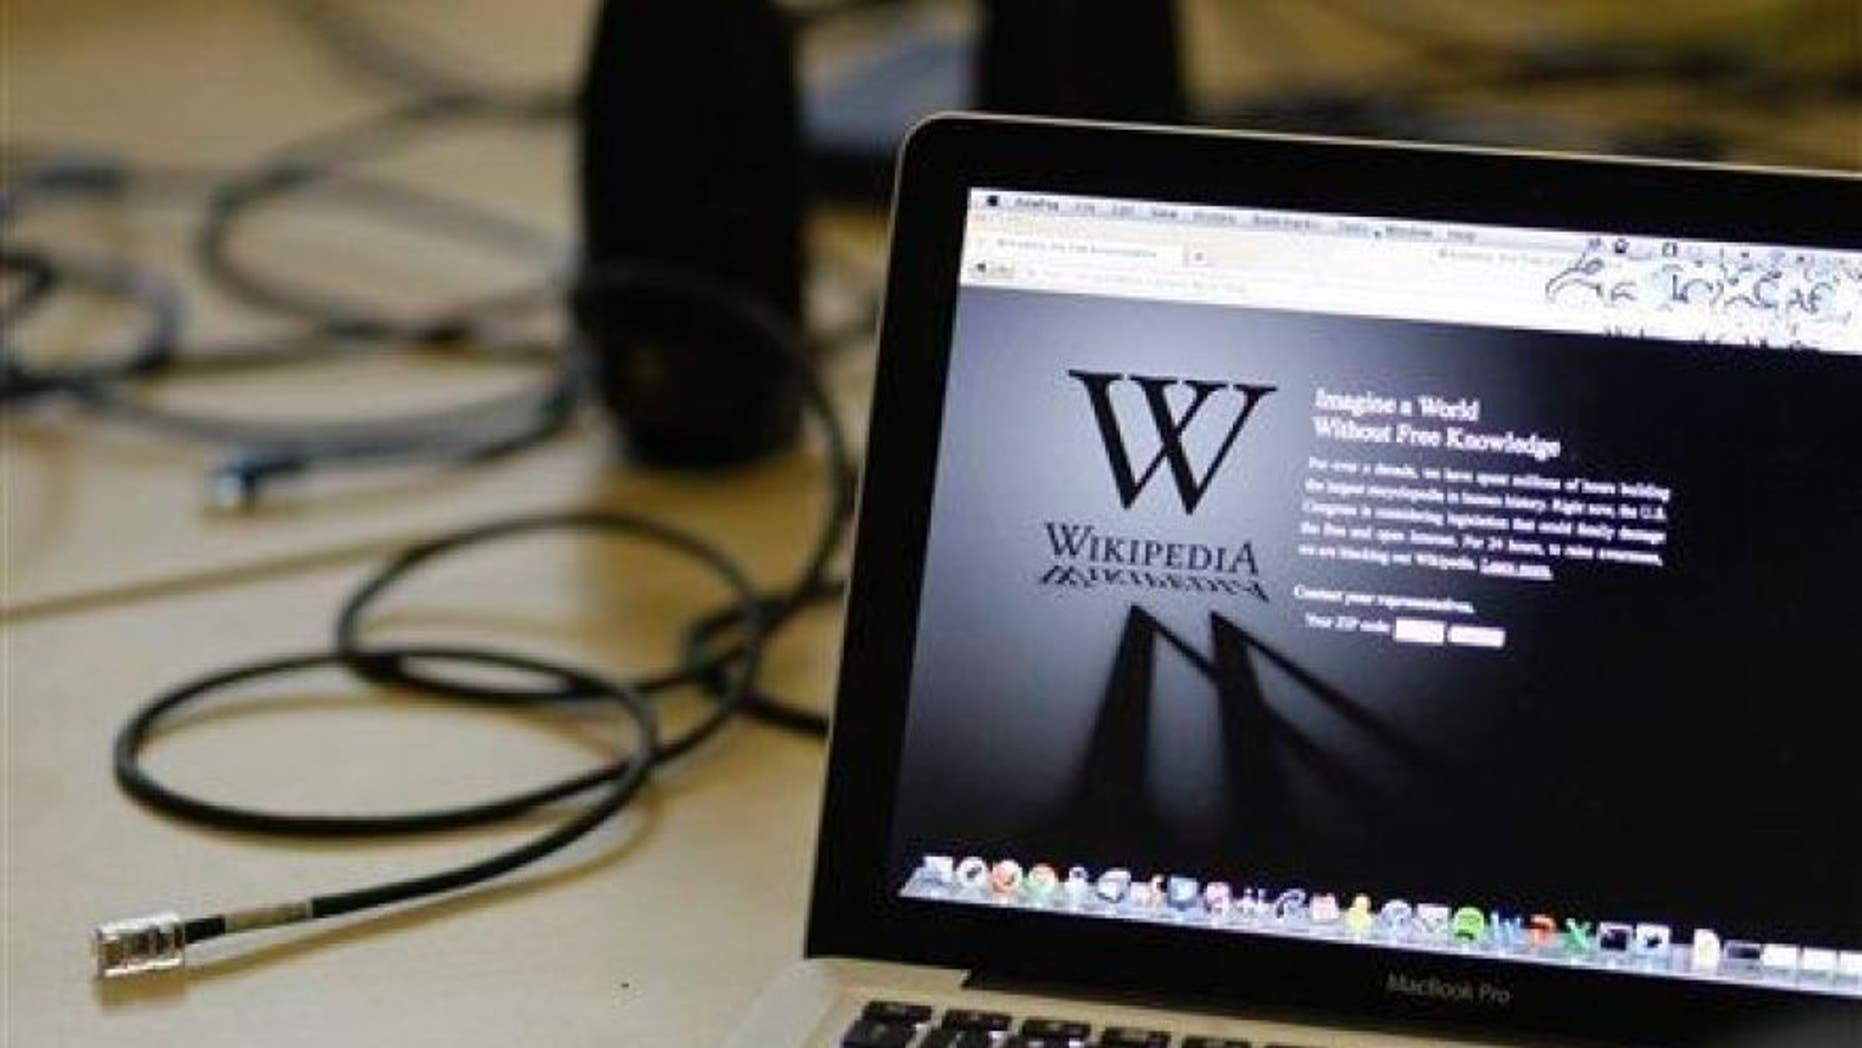 A blackout landing page is displayed on a laptop computer screen at the offices of the Wikipedia Foundation in San Francisco, Wednesday, Jan. 18, 2012.